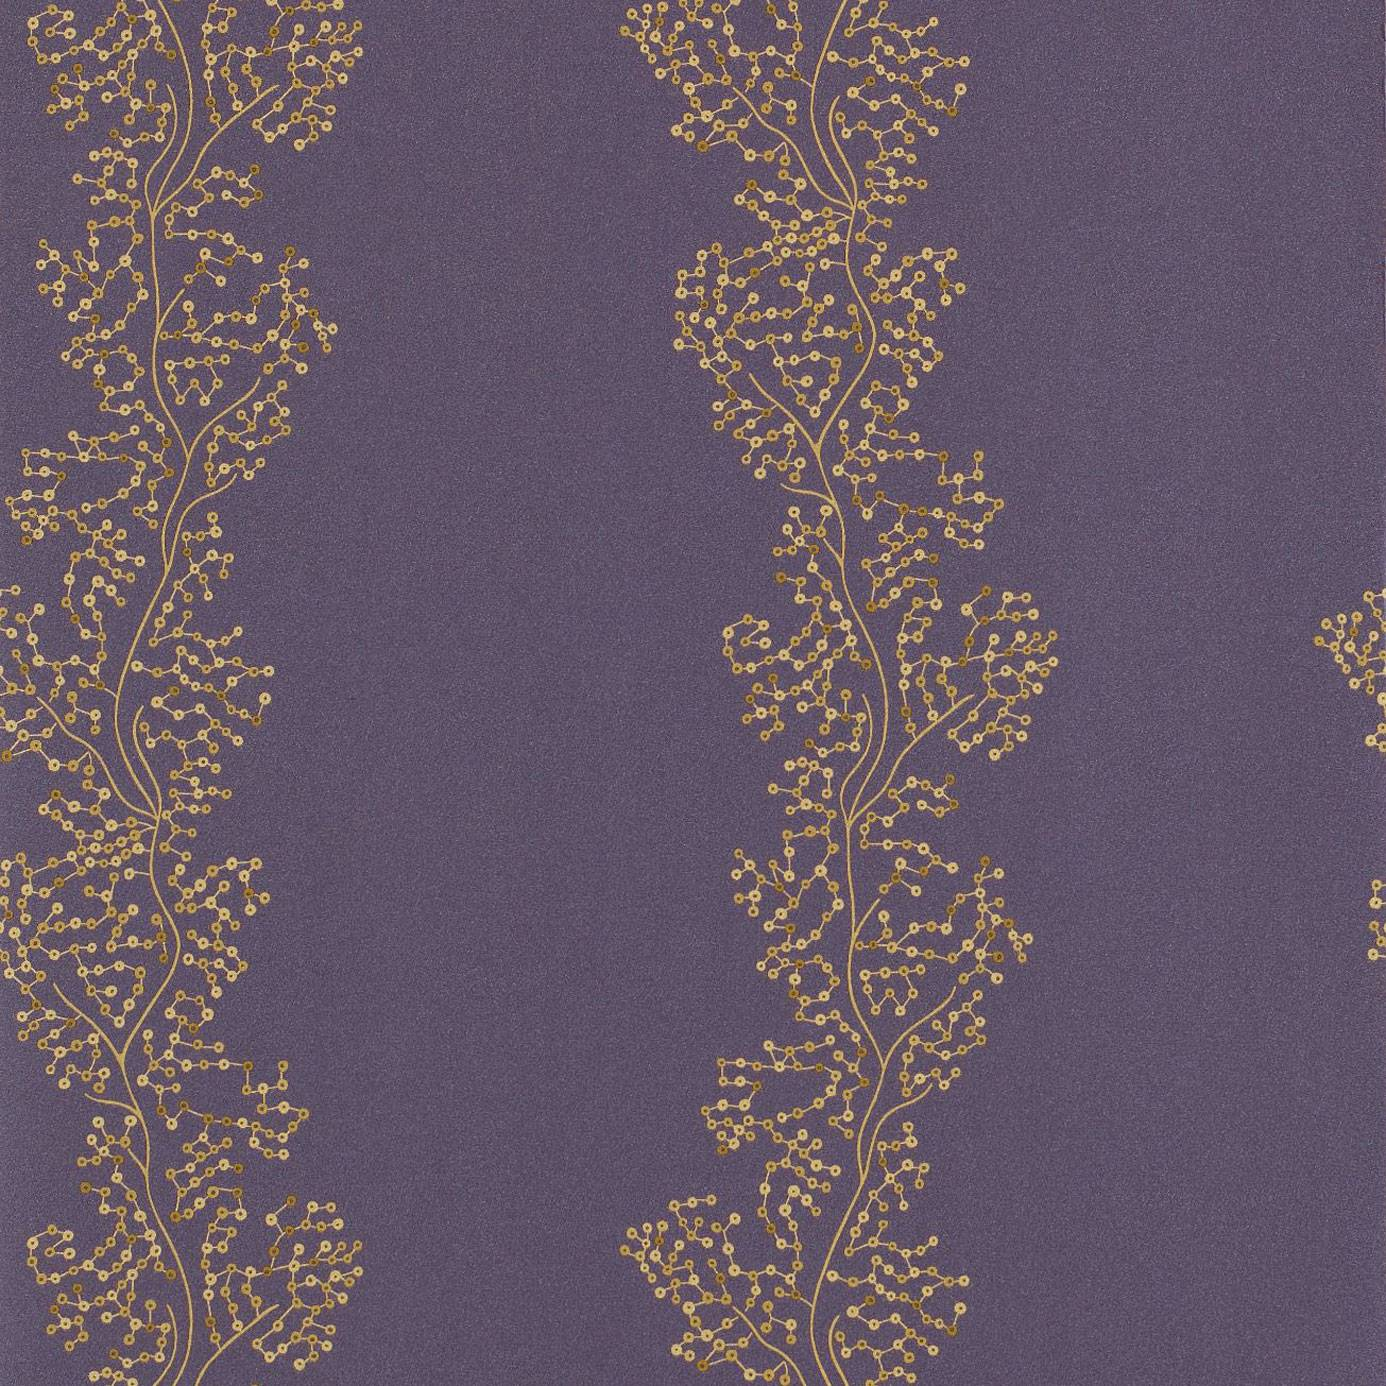 Wallpapers Sanderson Aegean Wallpapers Sparkle Coral Wallpaper   Gold 1386x1386